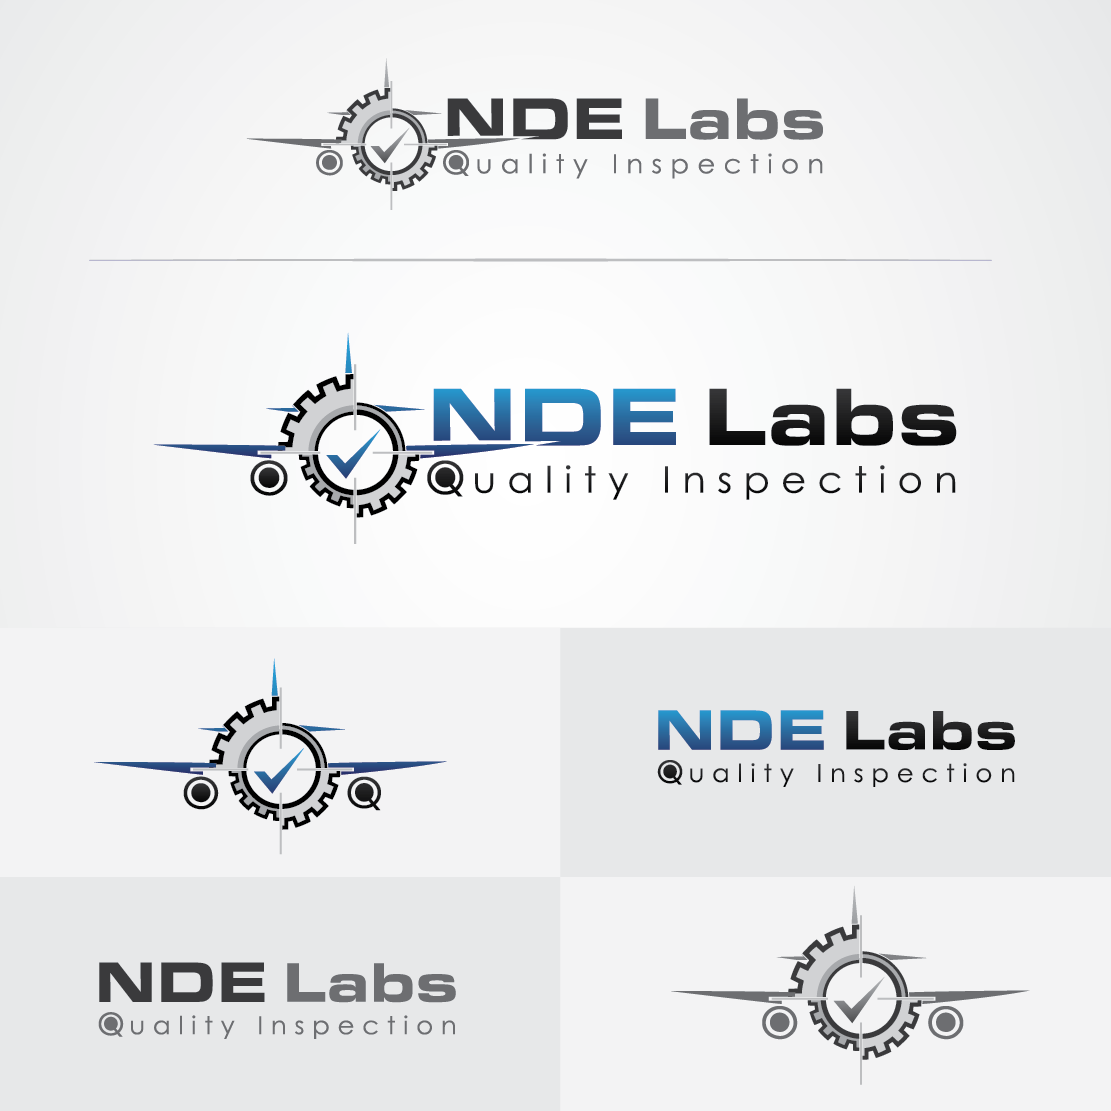 New logo wanted for NDE Labs